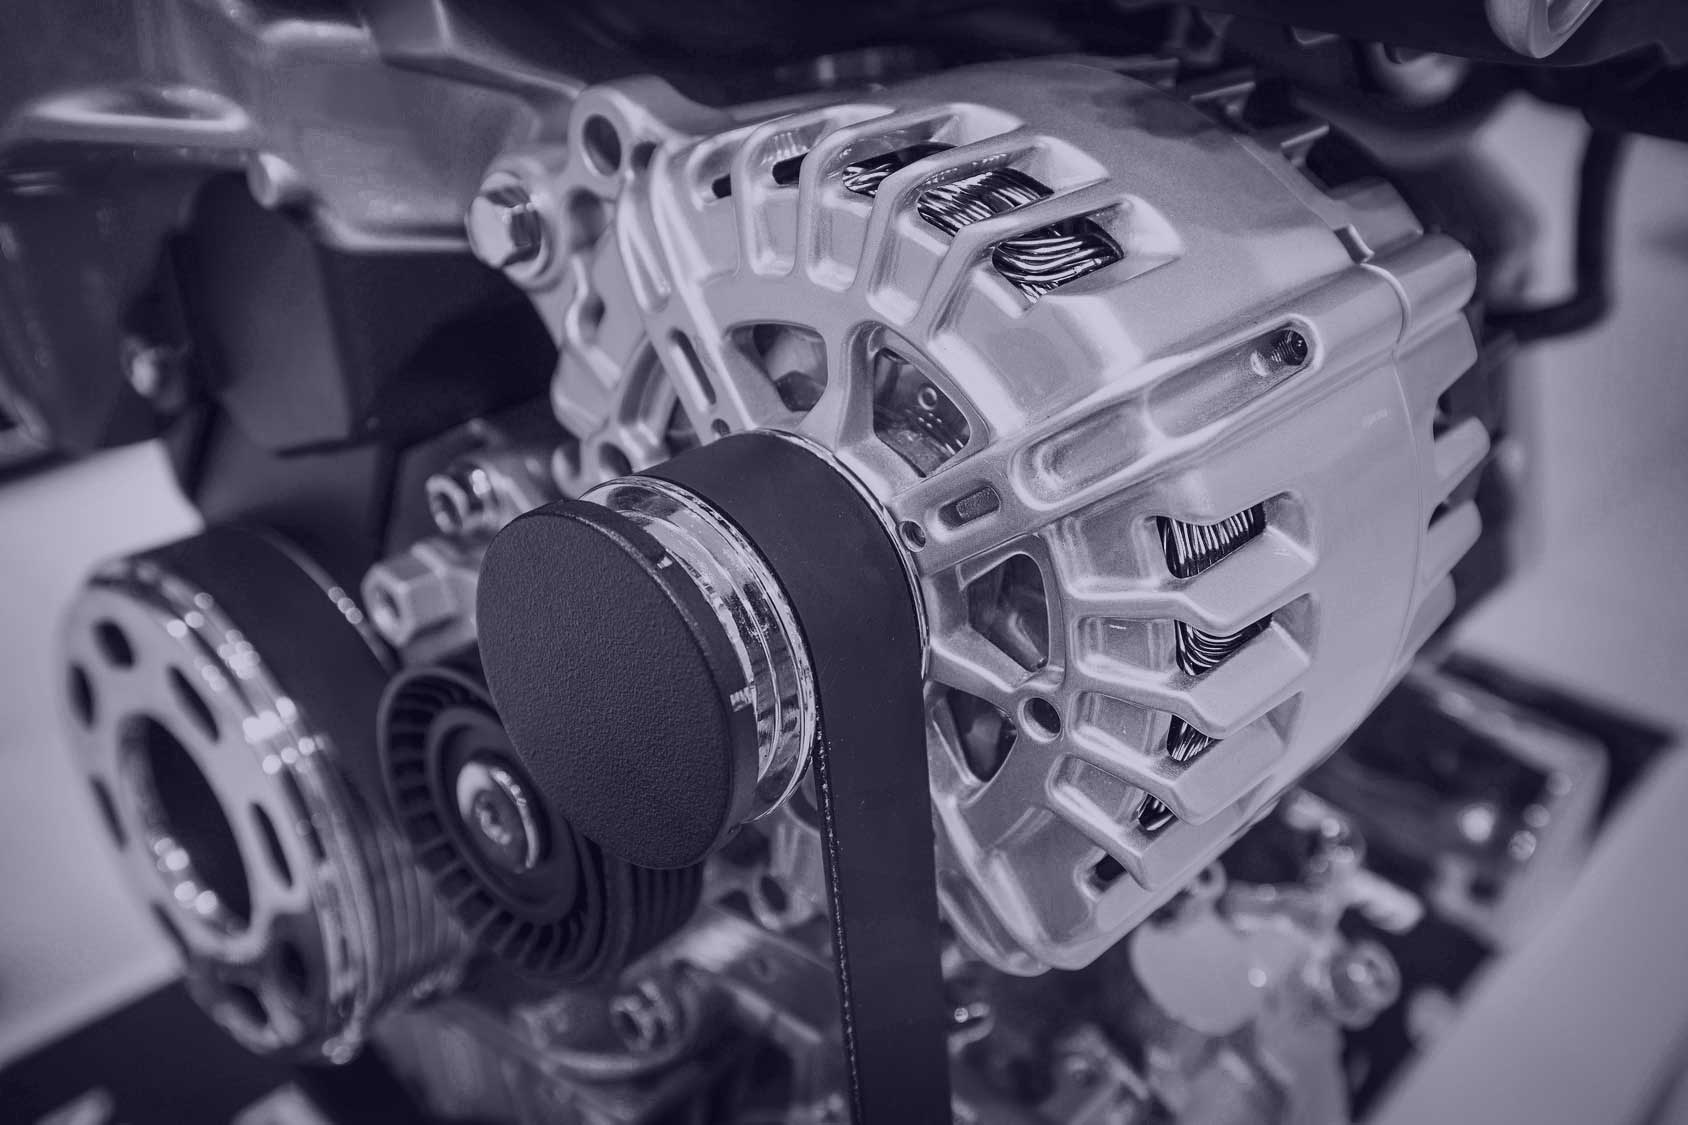 Part of car's engine